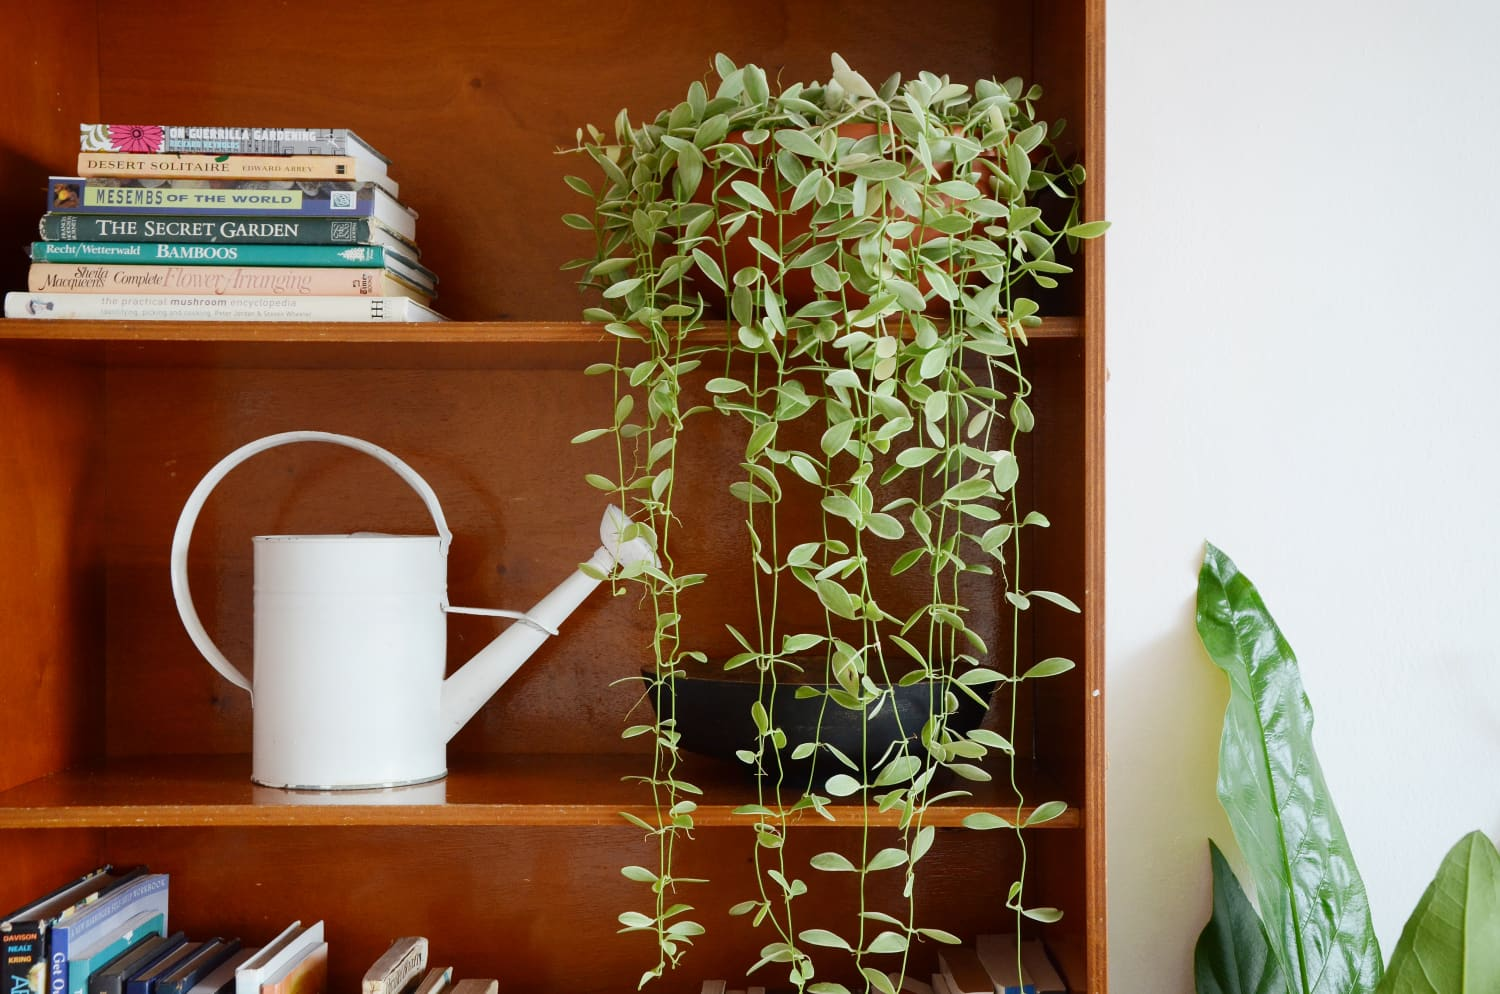 This Popular TikTok Shares the Most Stress-Free Way To Water Houseplants